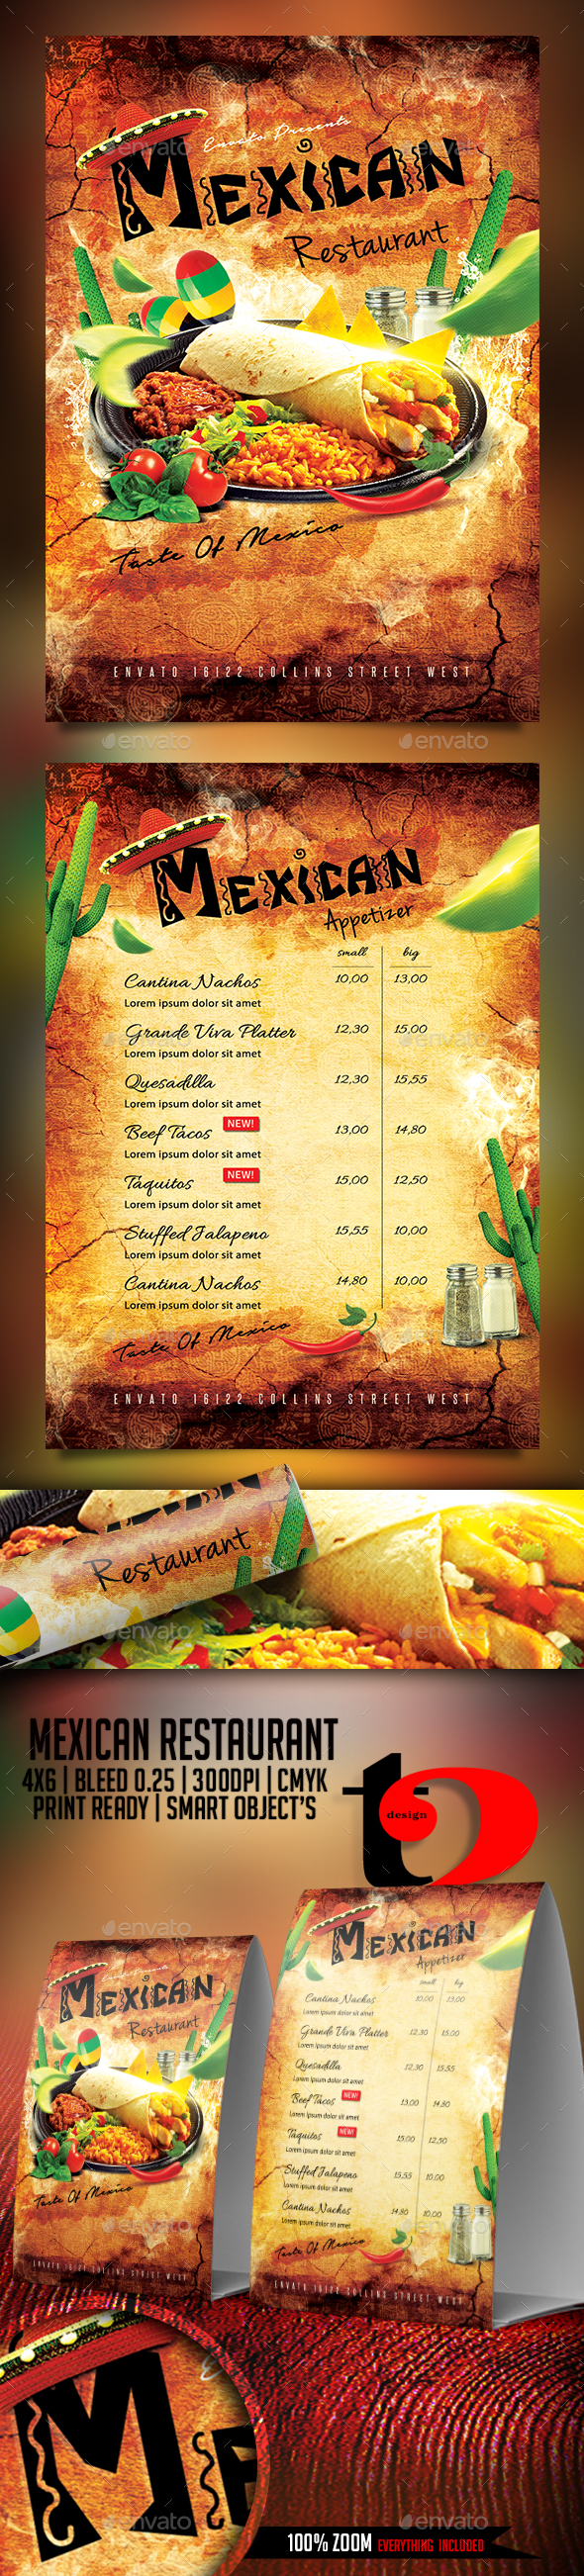 Mexican Restaurant Flyer Template - Restaurant Flyers